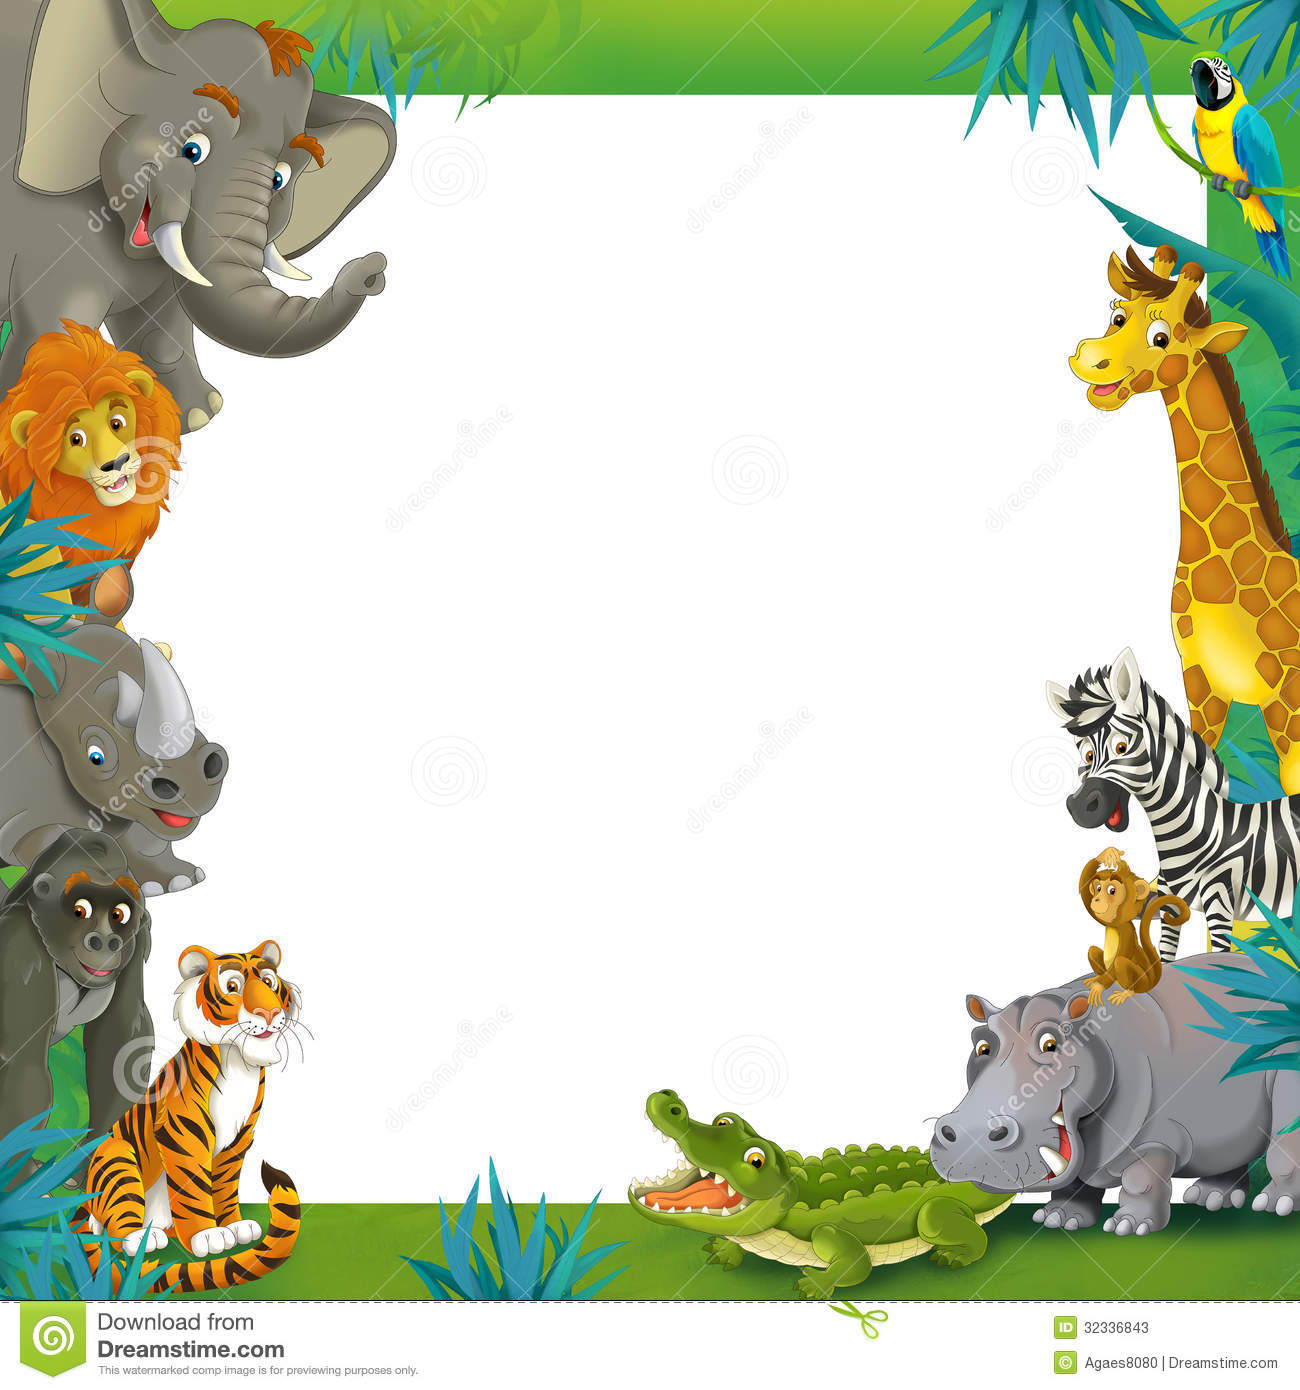 cartoon safari jungle frame border template illustration for the children stock Disney Borders and Frames Disney Character Border Frame